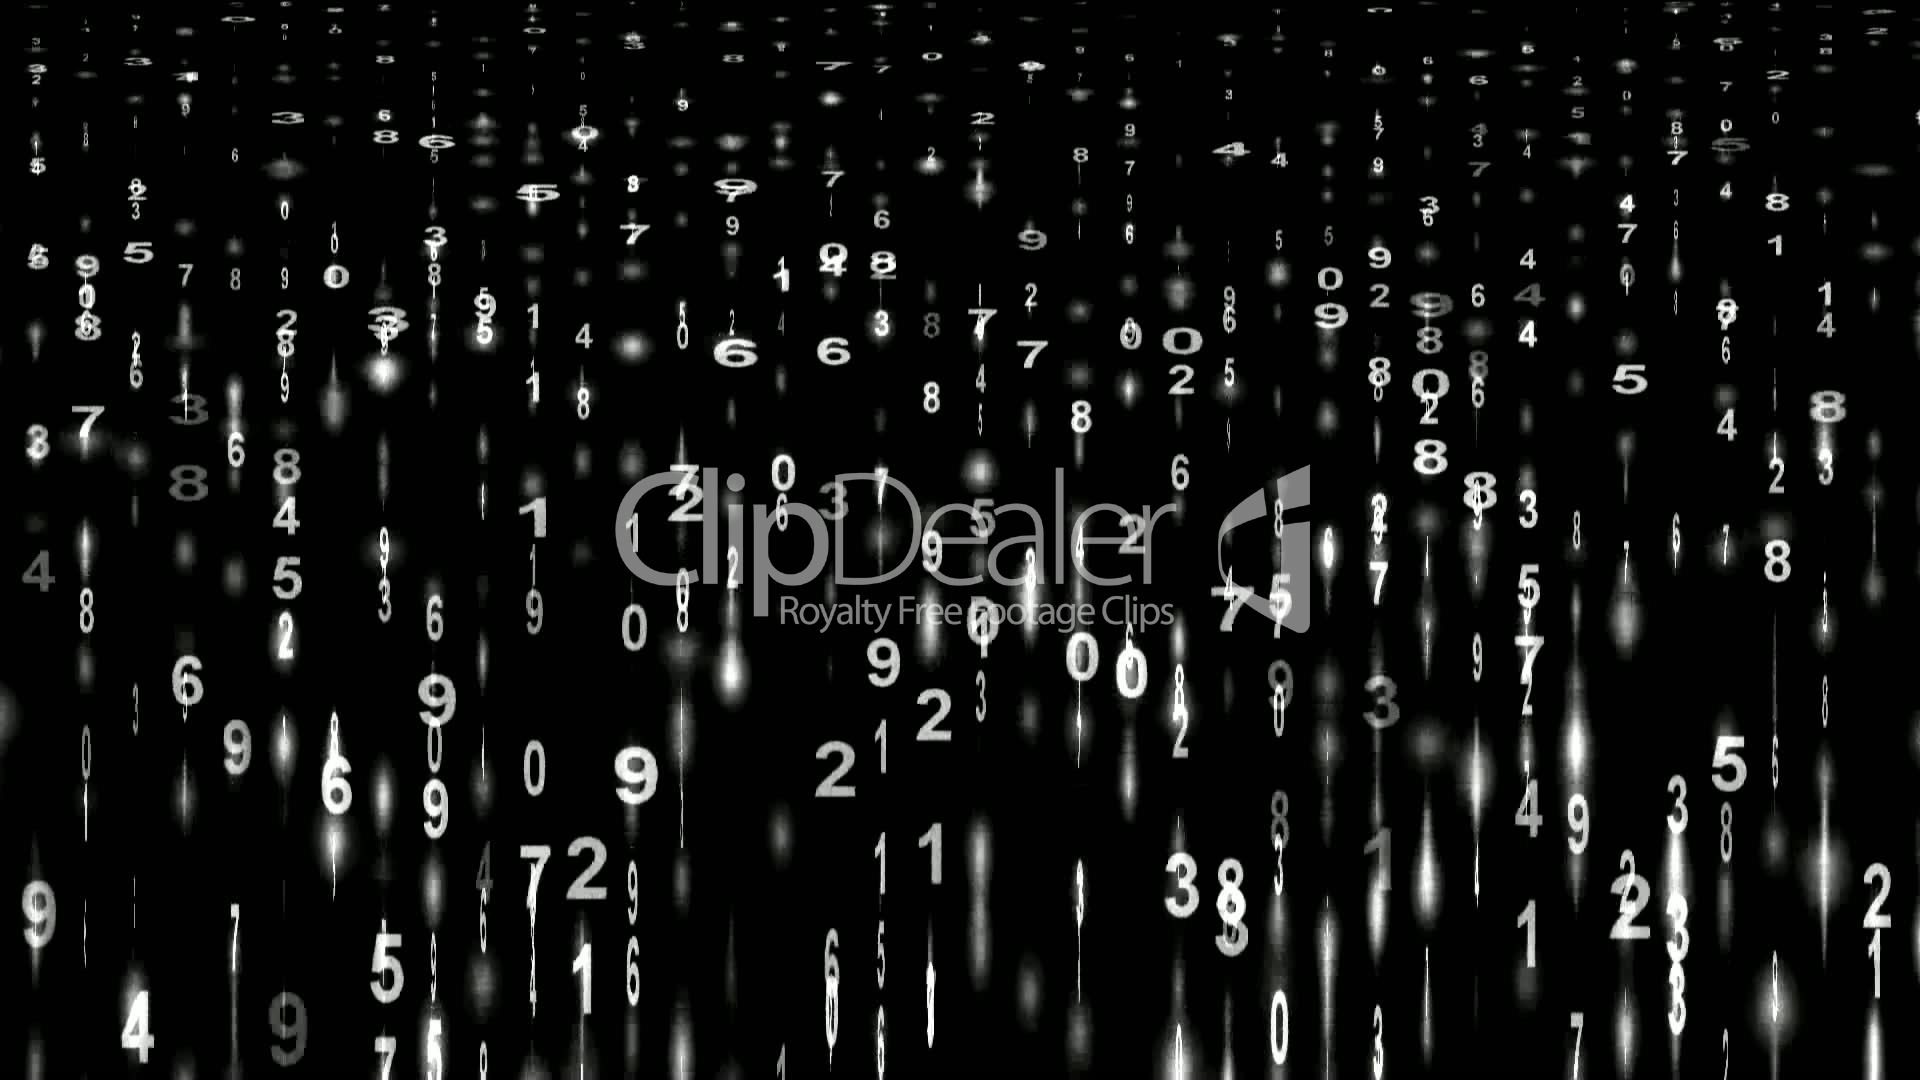 White Digital Matrixstock Tickerfinance Number Background